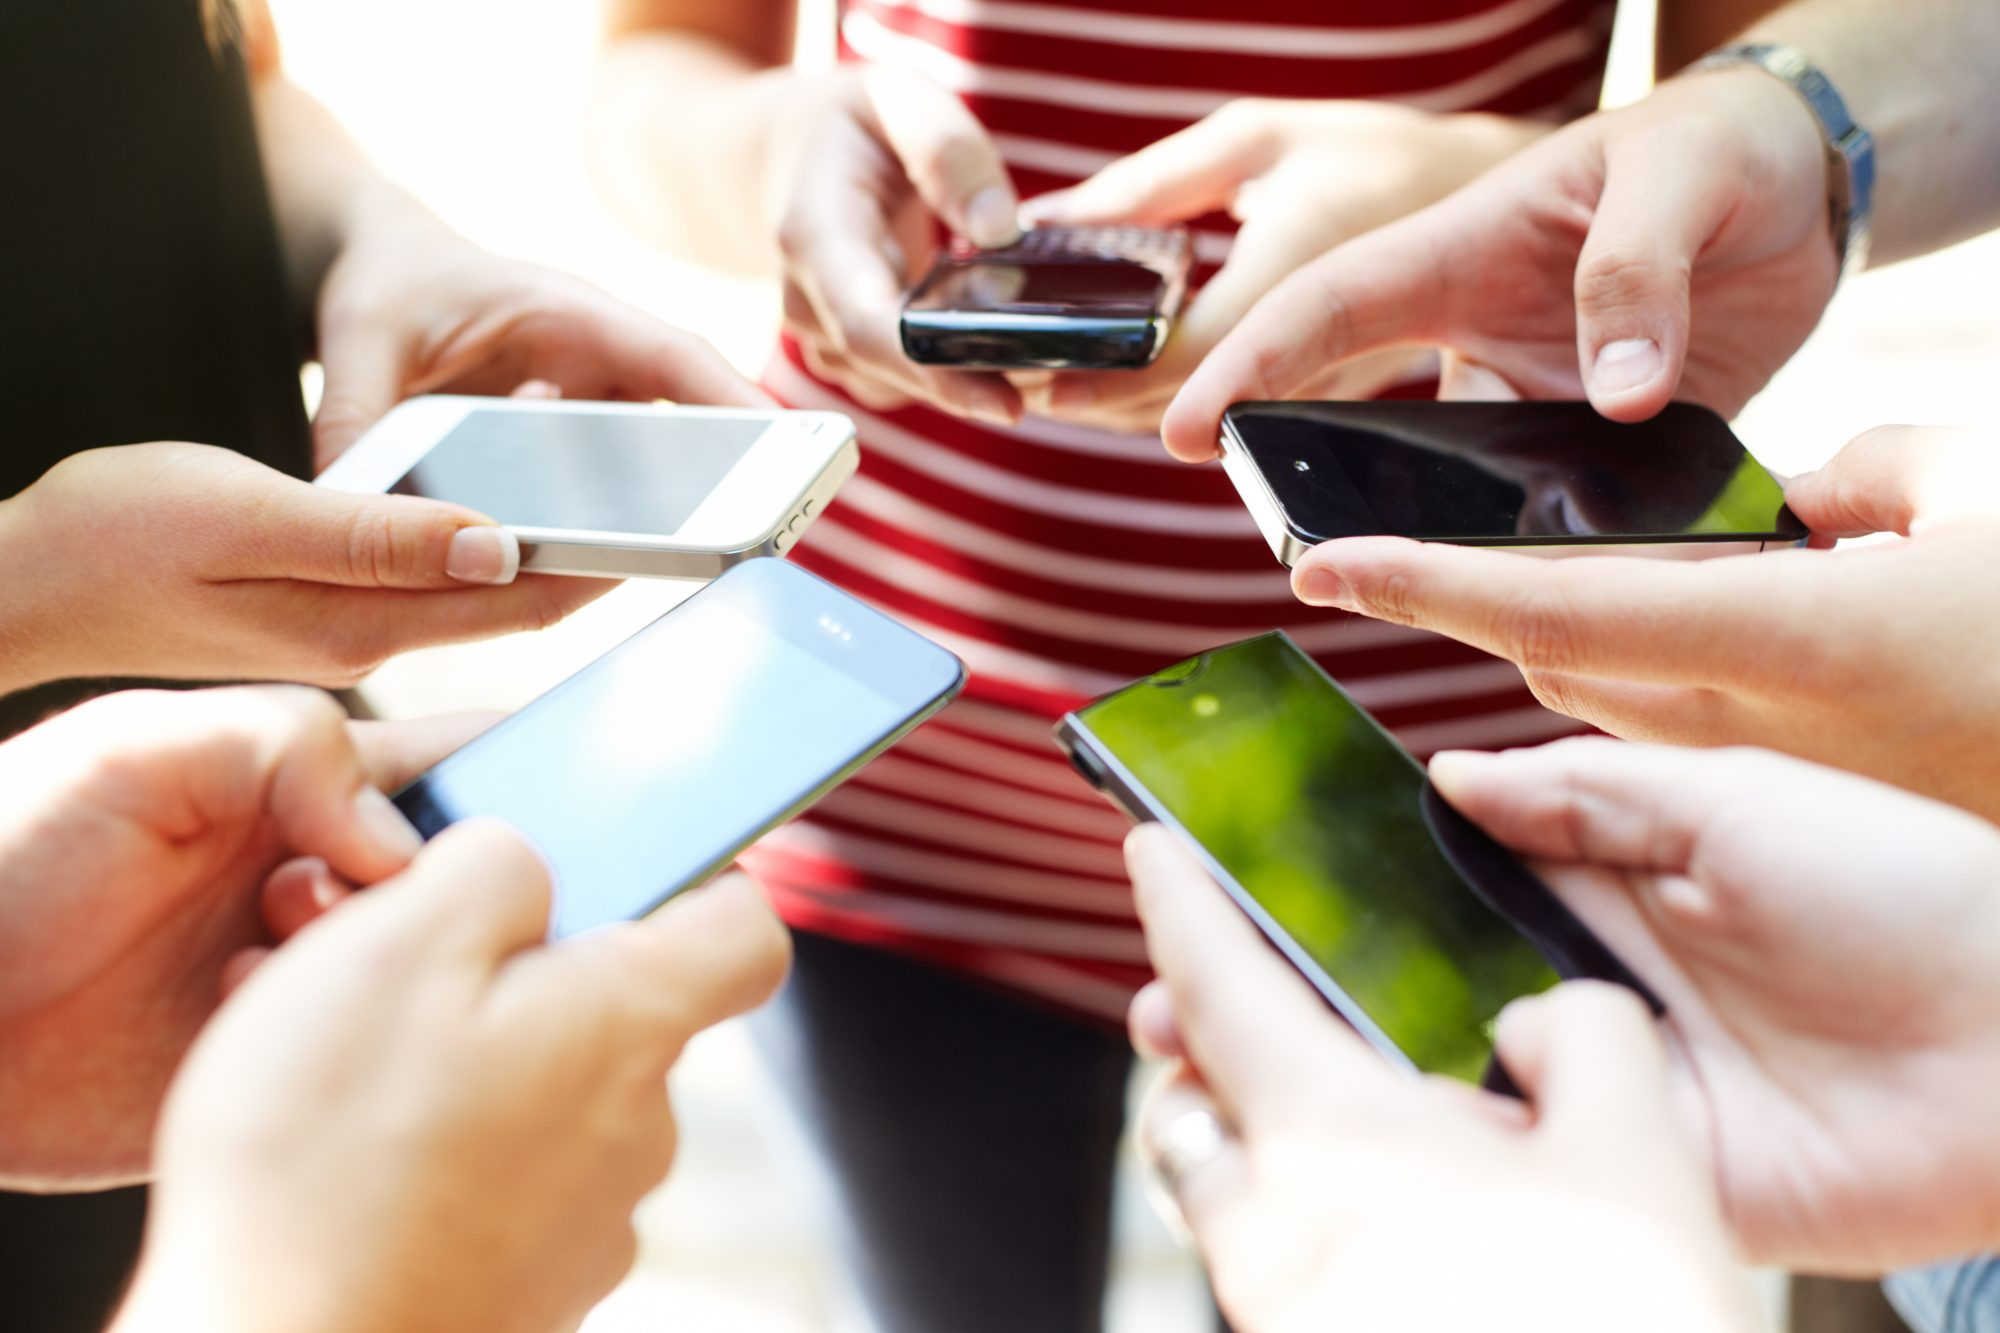 The Scary Truth About How Often People Use Their Phones